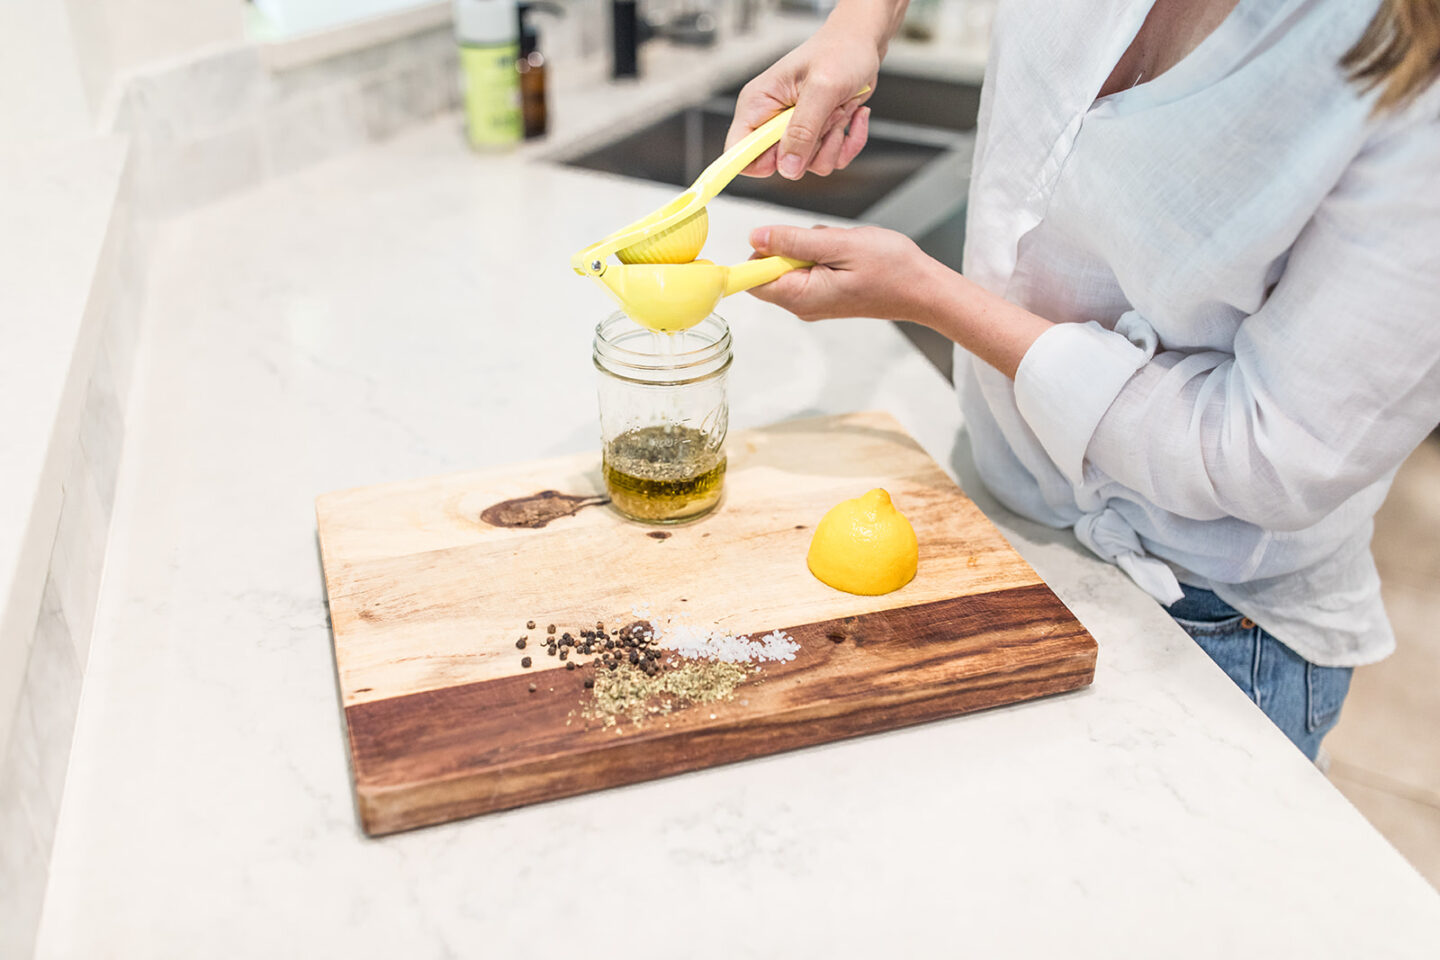 Easy Homemade Salad Dressing Recipe featured by top Atlanta lifestyle blogger, Moderately High Maintenance | Homemade Salad Dressing by popular Atlanta lifestyle blog, Moderately High Maintenance: image of a woman squeezing some lemon juice into a mason jar.